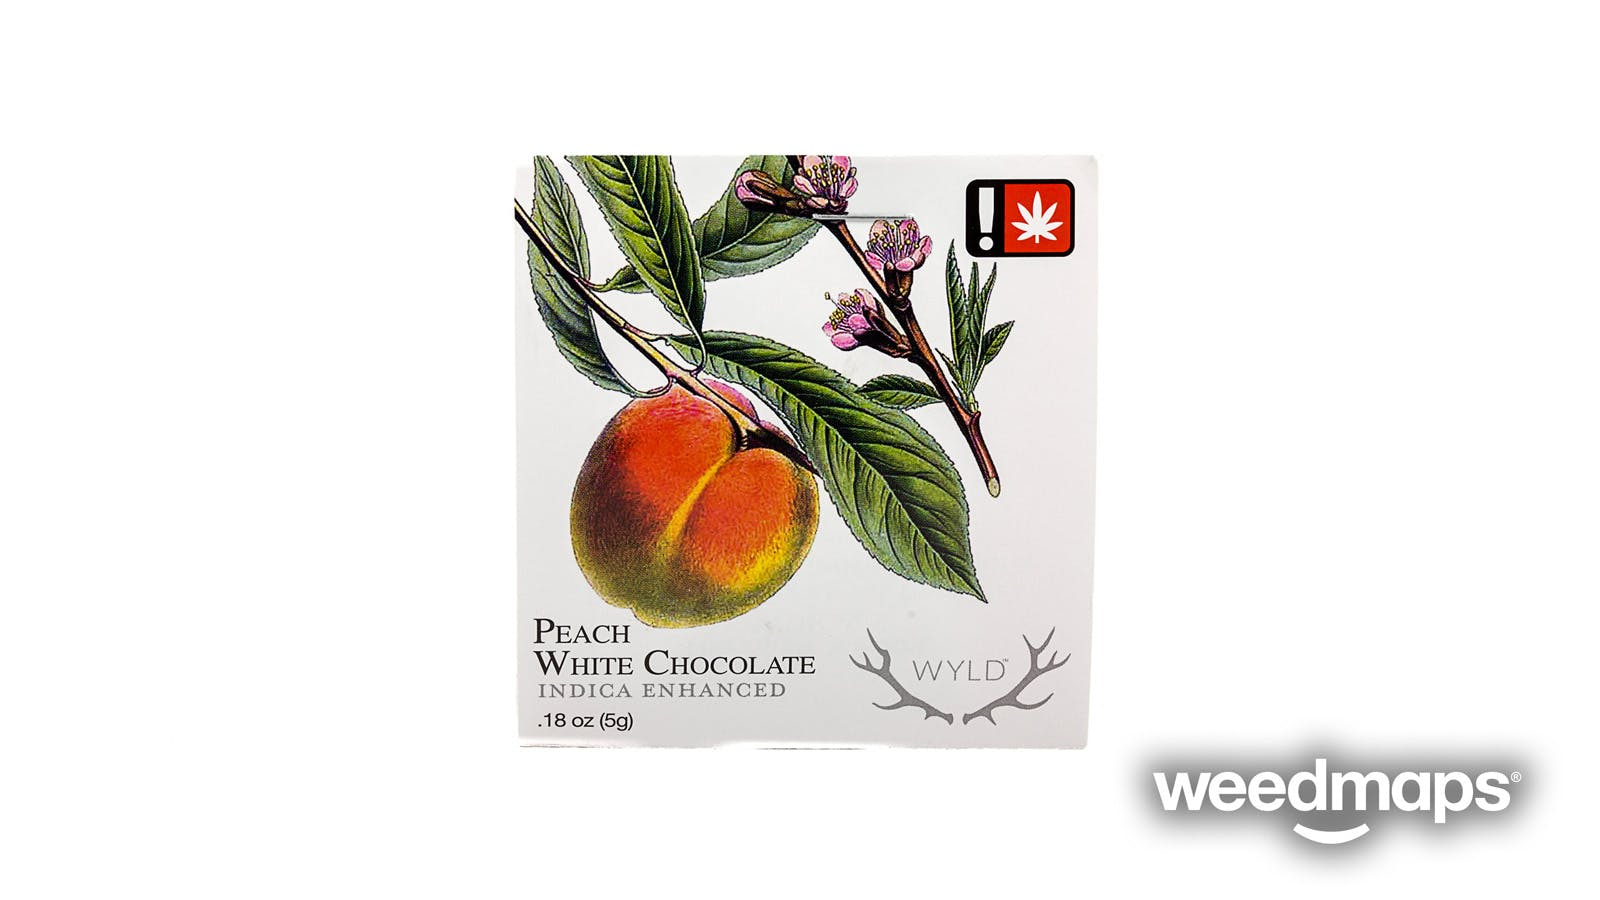 edible-wyld-peach-white-chocolate-indica-2c-single